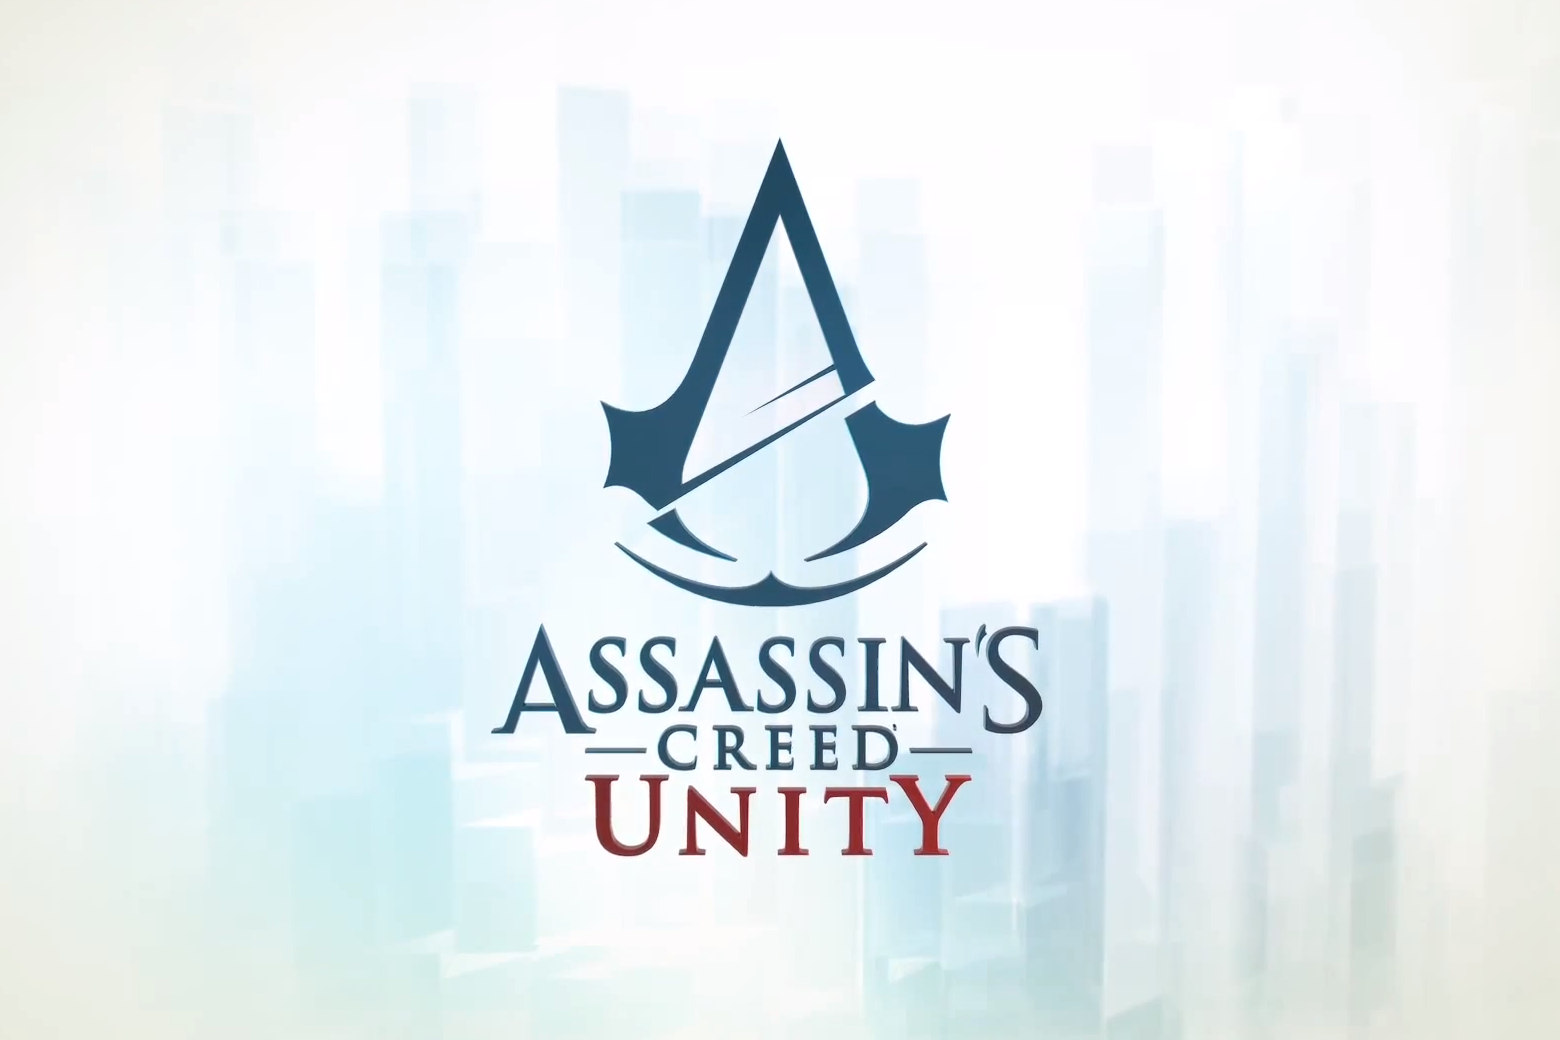 UPDATE: Wii U Missing From Assassin's Creed: Unity Announcment